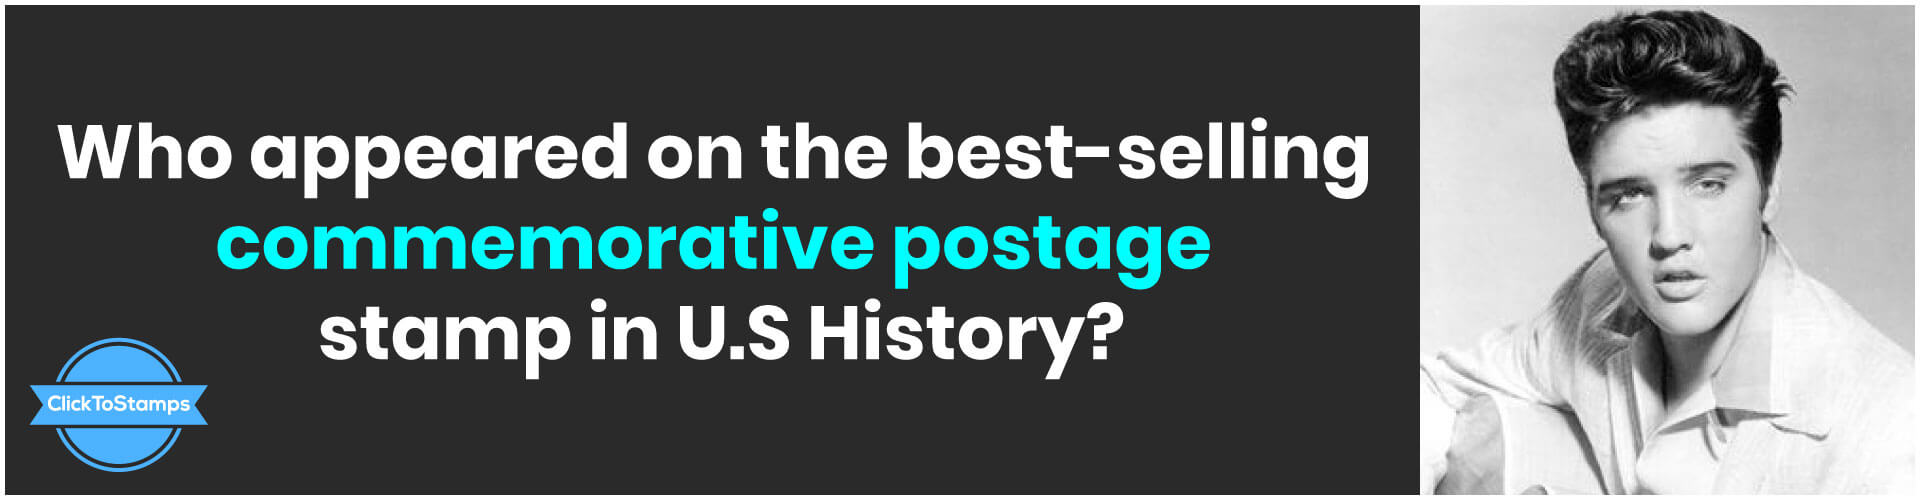 Who-appeared-on-the-best-selling-commemorative-postage-stamp-in-U.S-History